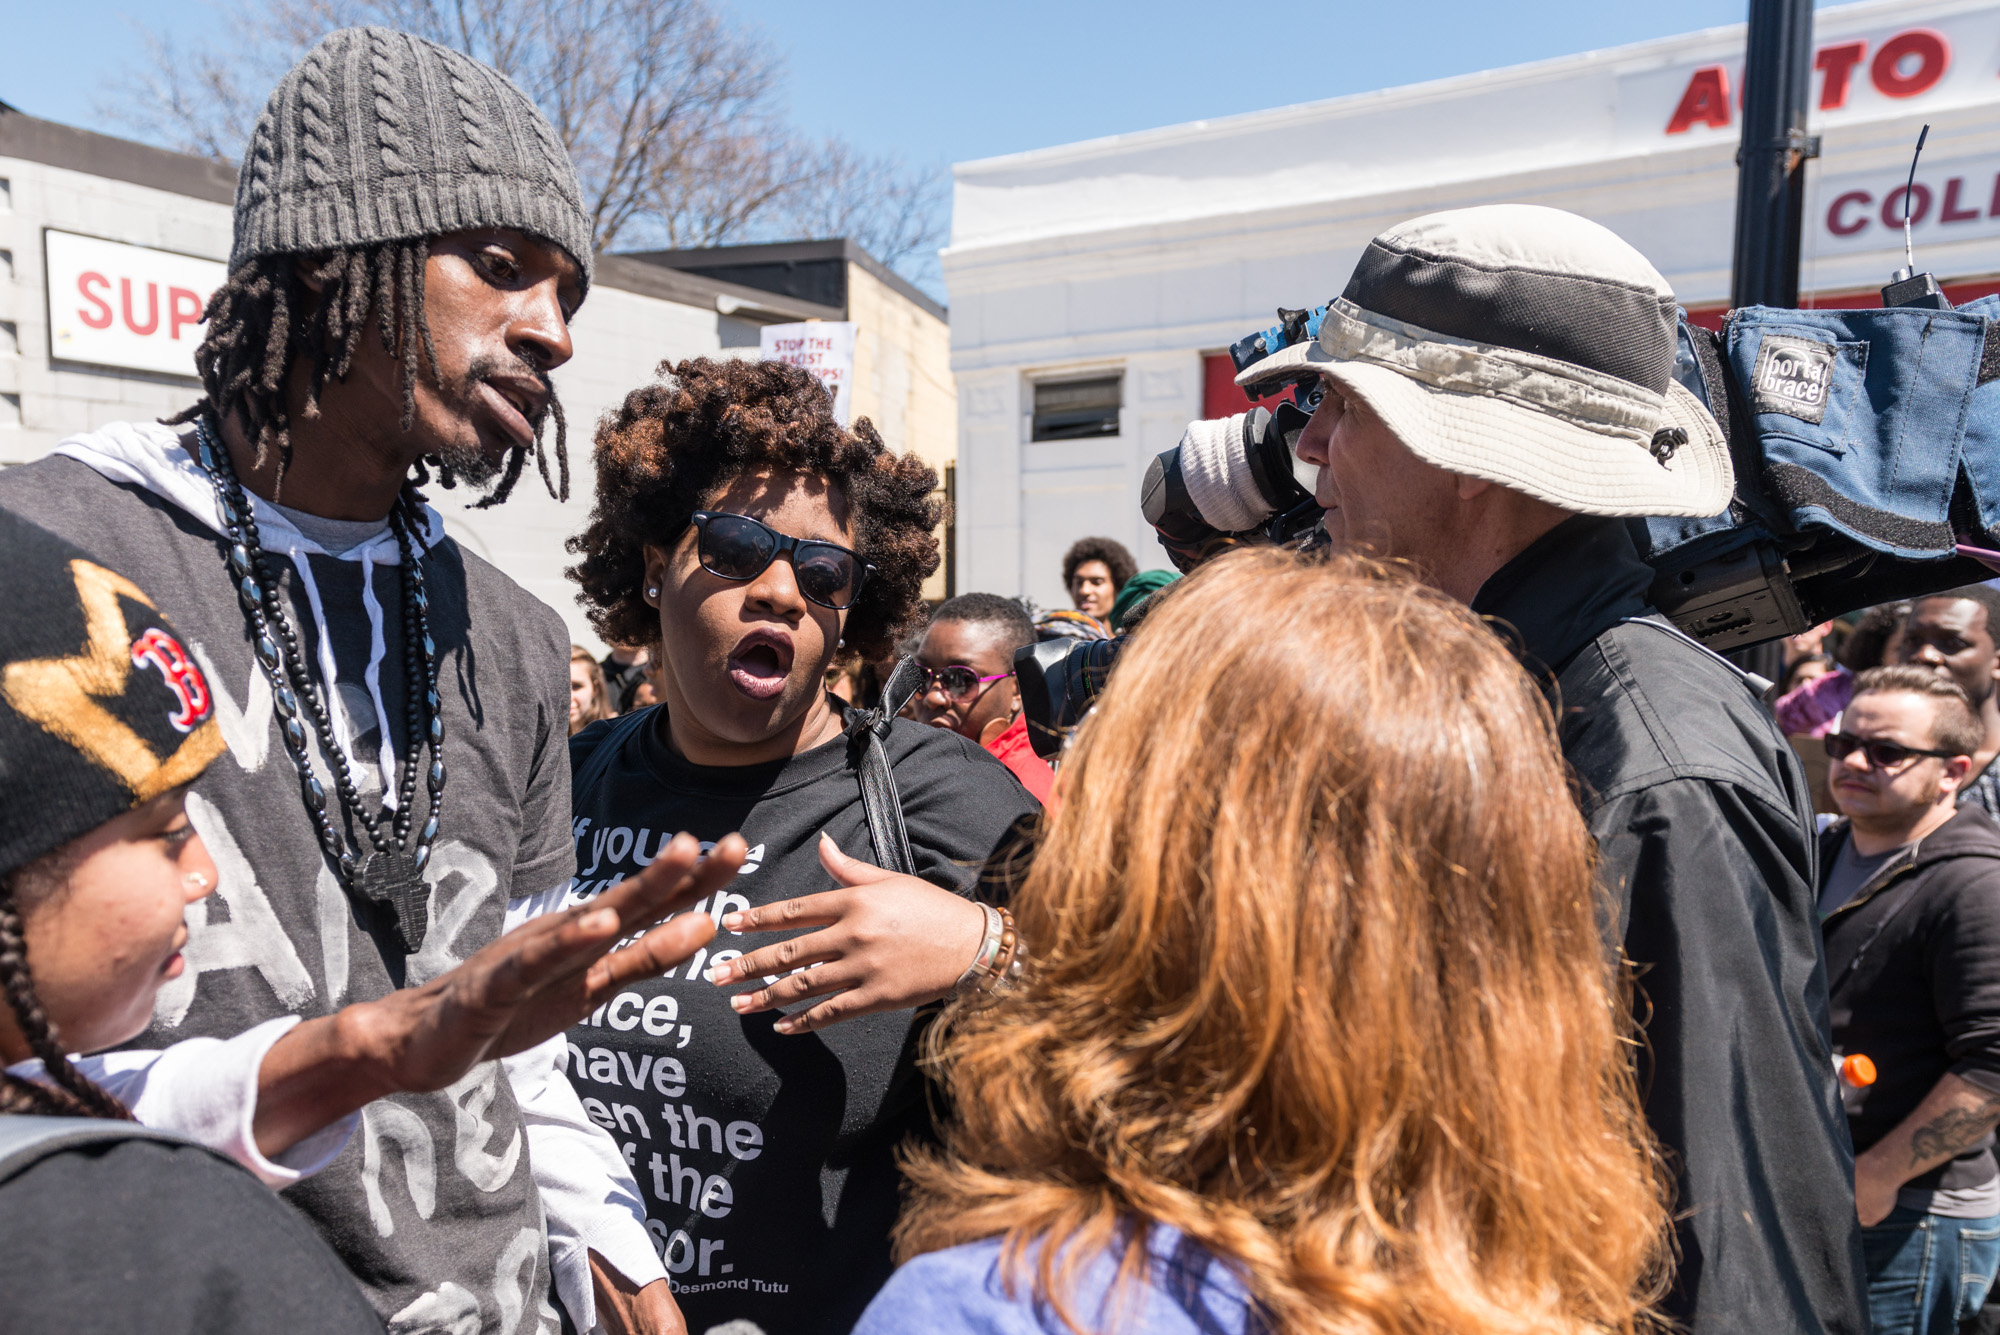 Two of the organizers confronting local media